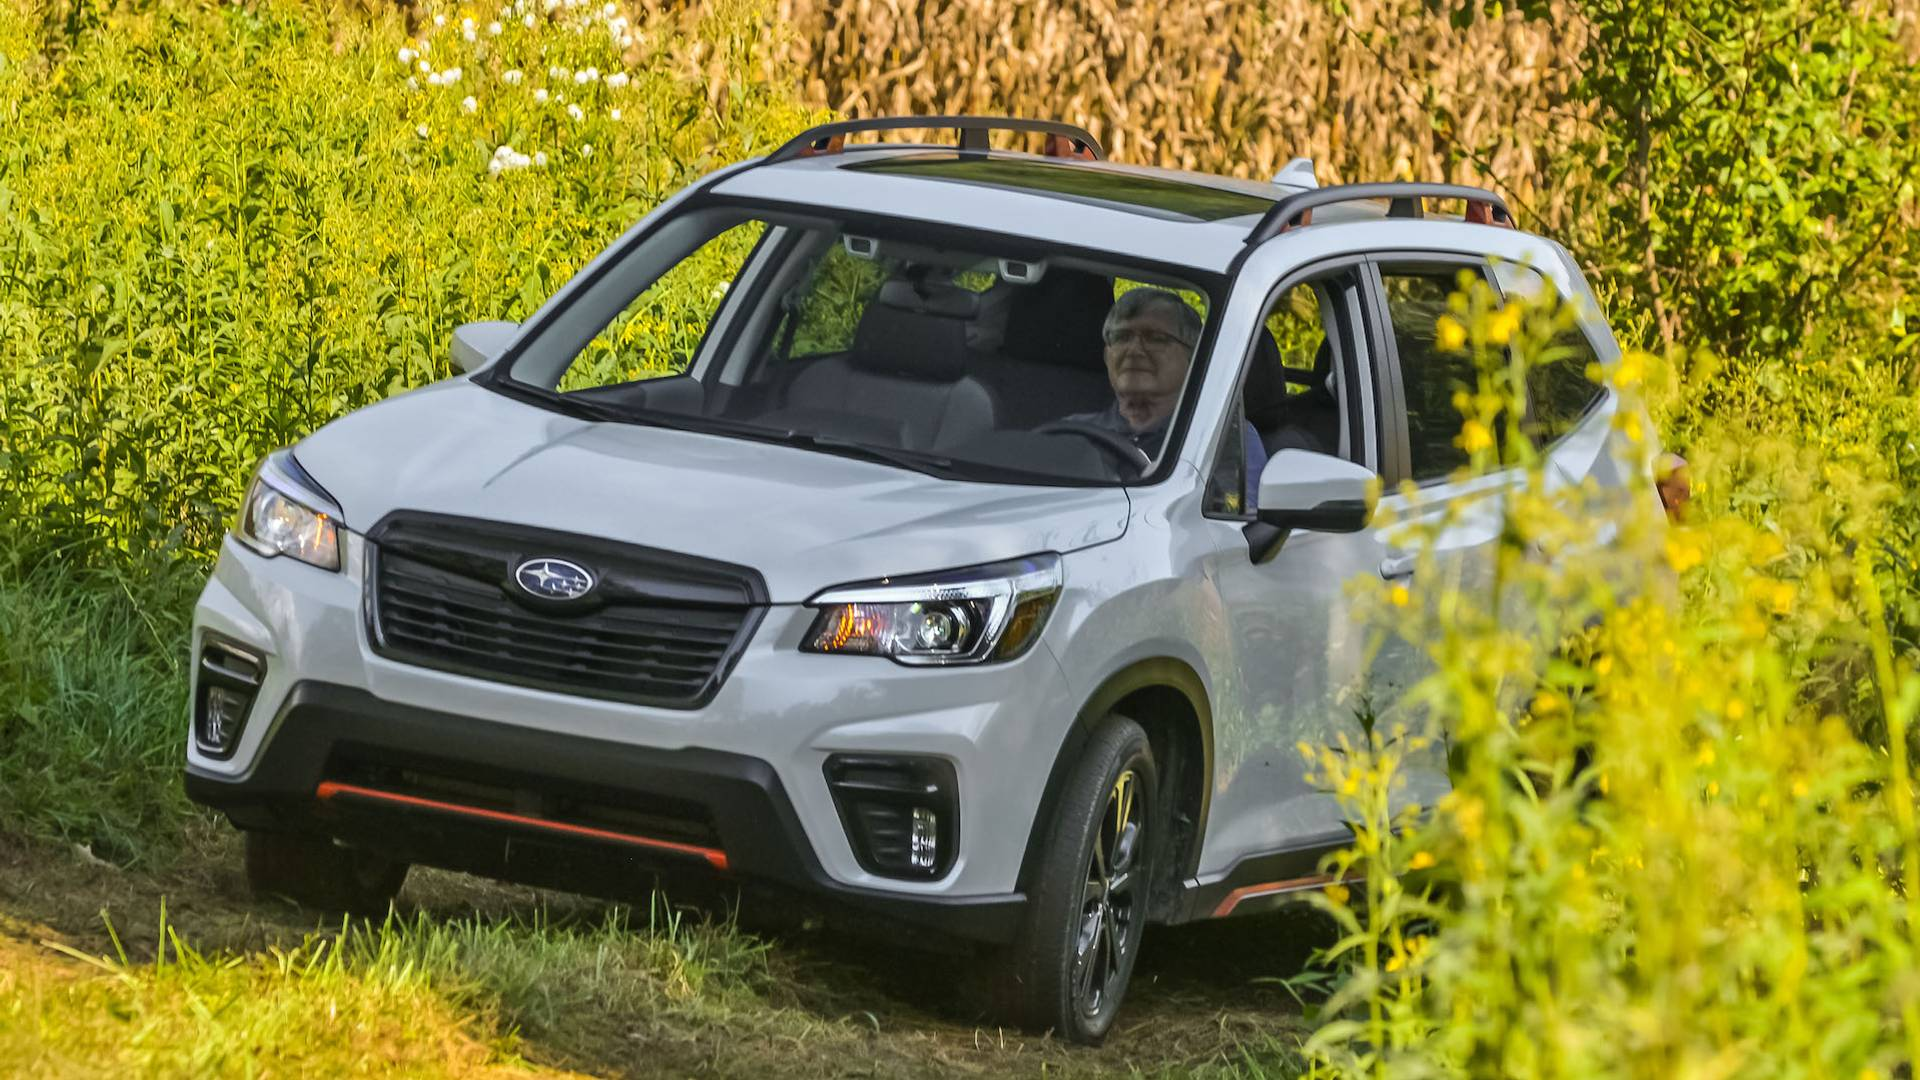 The latest 2018 Subaru Forester gets a new engine on its domestic market, specifically a 1.8-liter turbocharged mill good for 177 hp (132 kW) and 300 Nm (221 lb-ft) of torque. The new spec fills the gap left by the 2.5-liter non-turbo rated at 185 hp (138 kW).